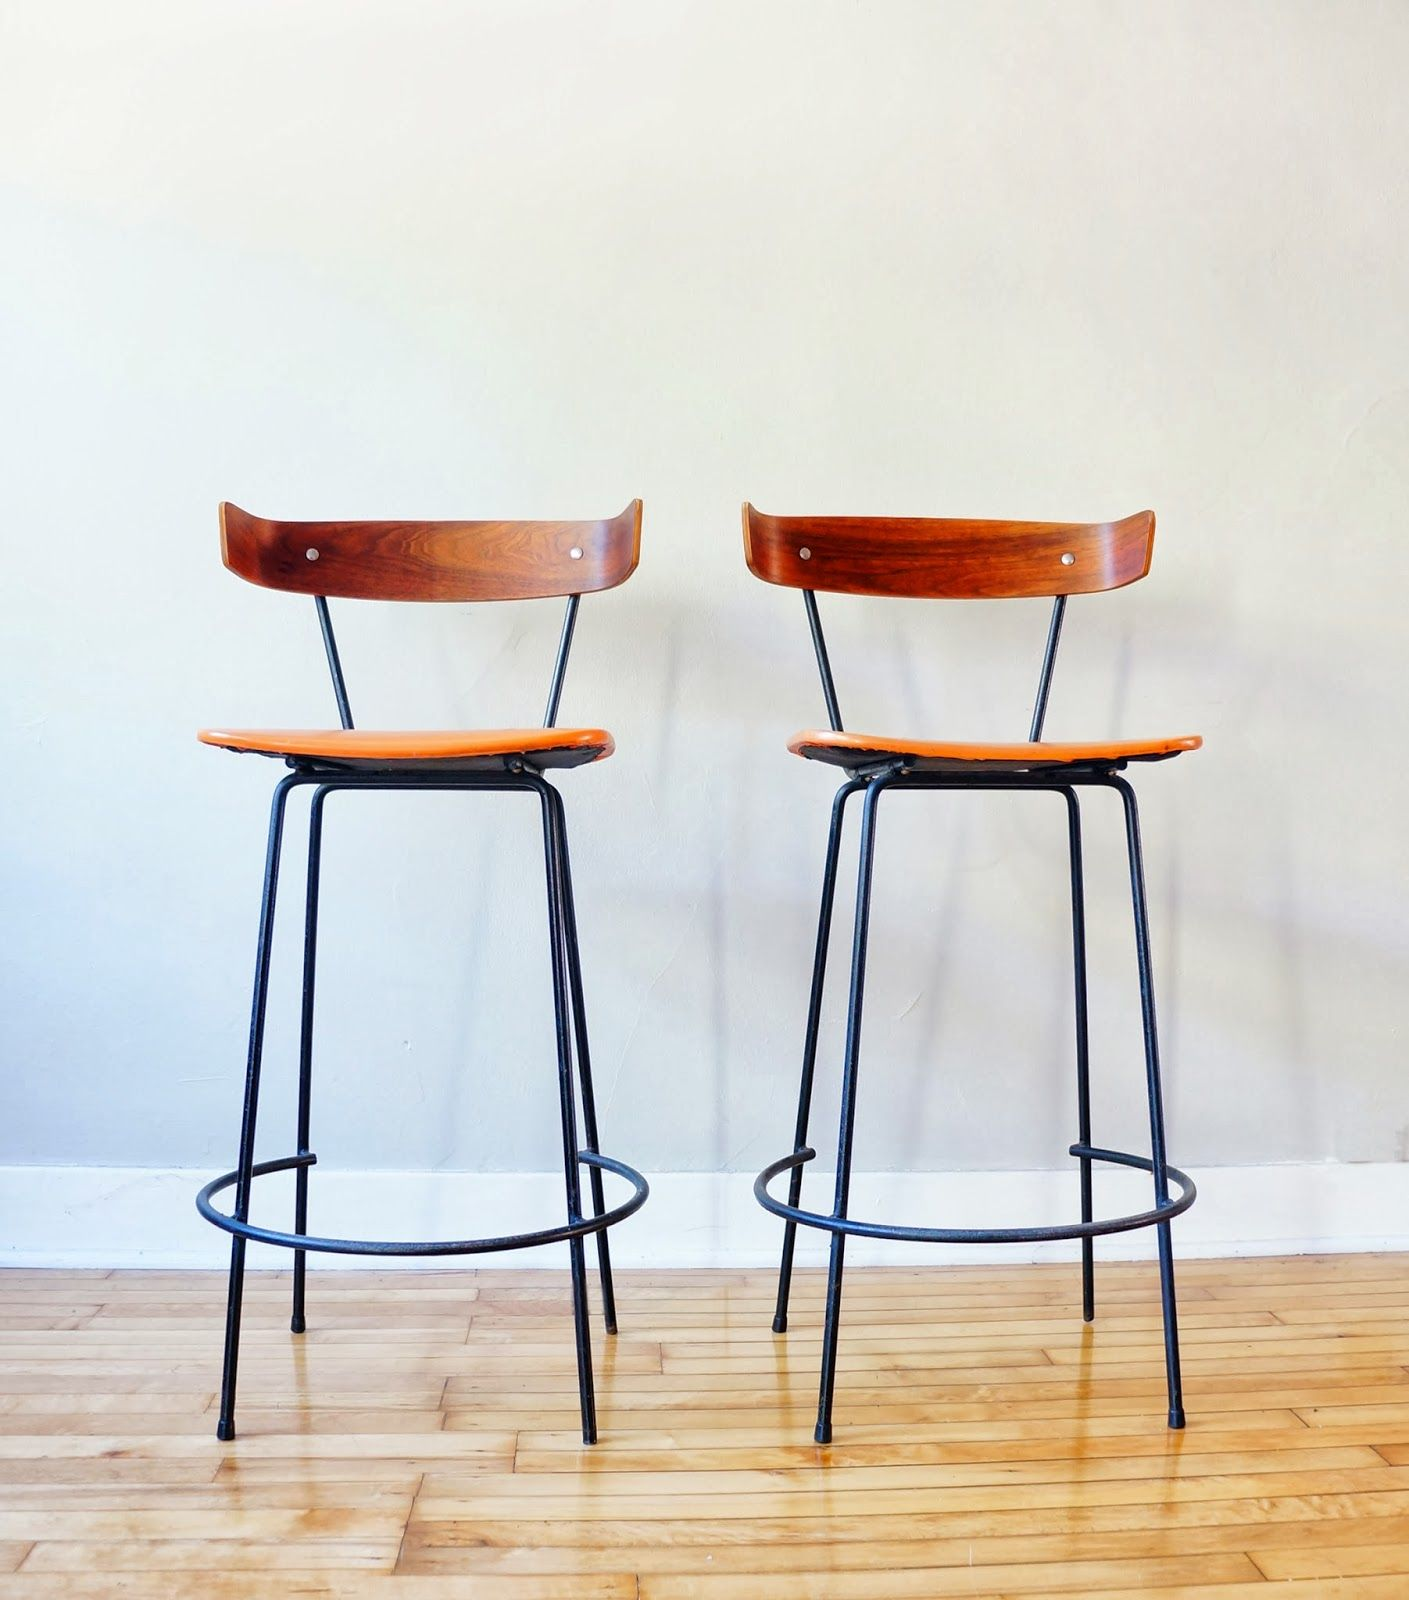 Bar Stools Black Iron Bar Stool With Brown Stain Wooden Seat And Curved Back Metal Stools Furniture Endearing Kitche Iron Bar Stools Bar Stools Cool Bar Stools